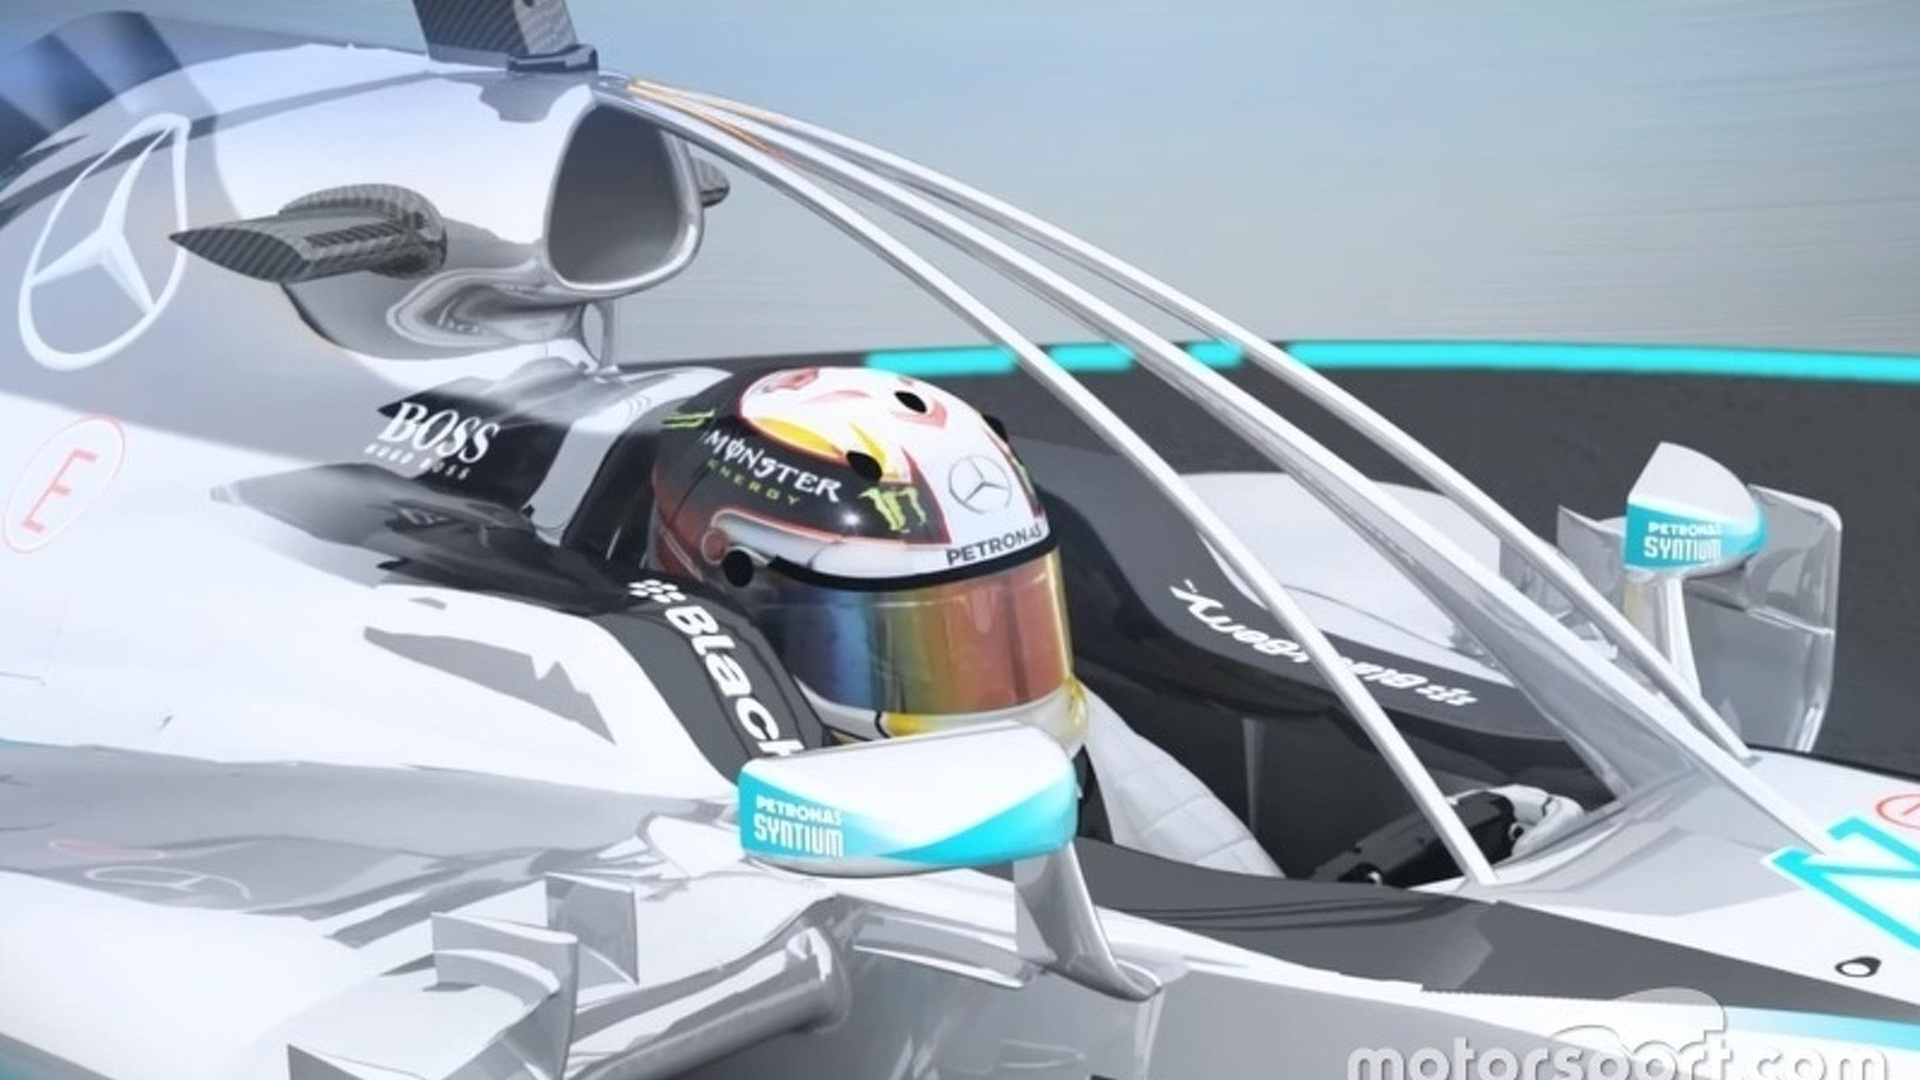 & Red Bull offers canopy solution as F1 teams meet to explore Halo